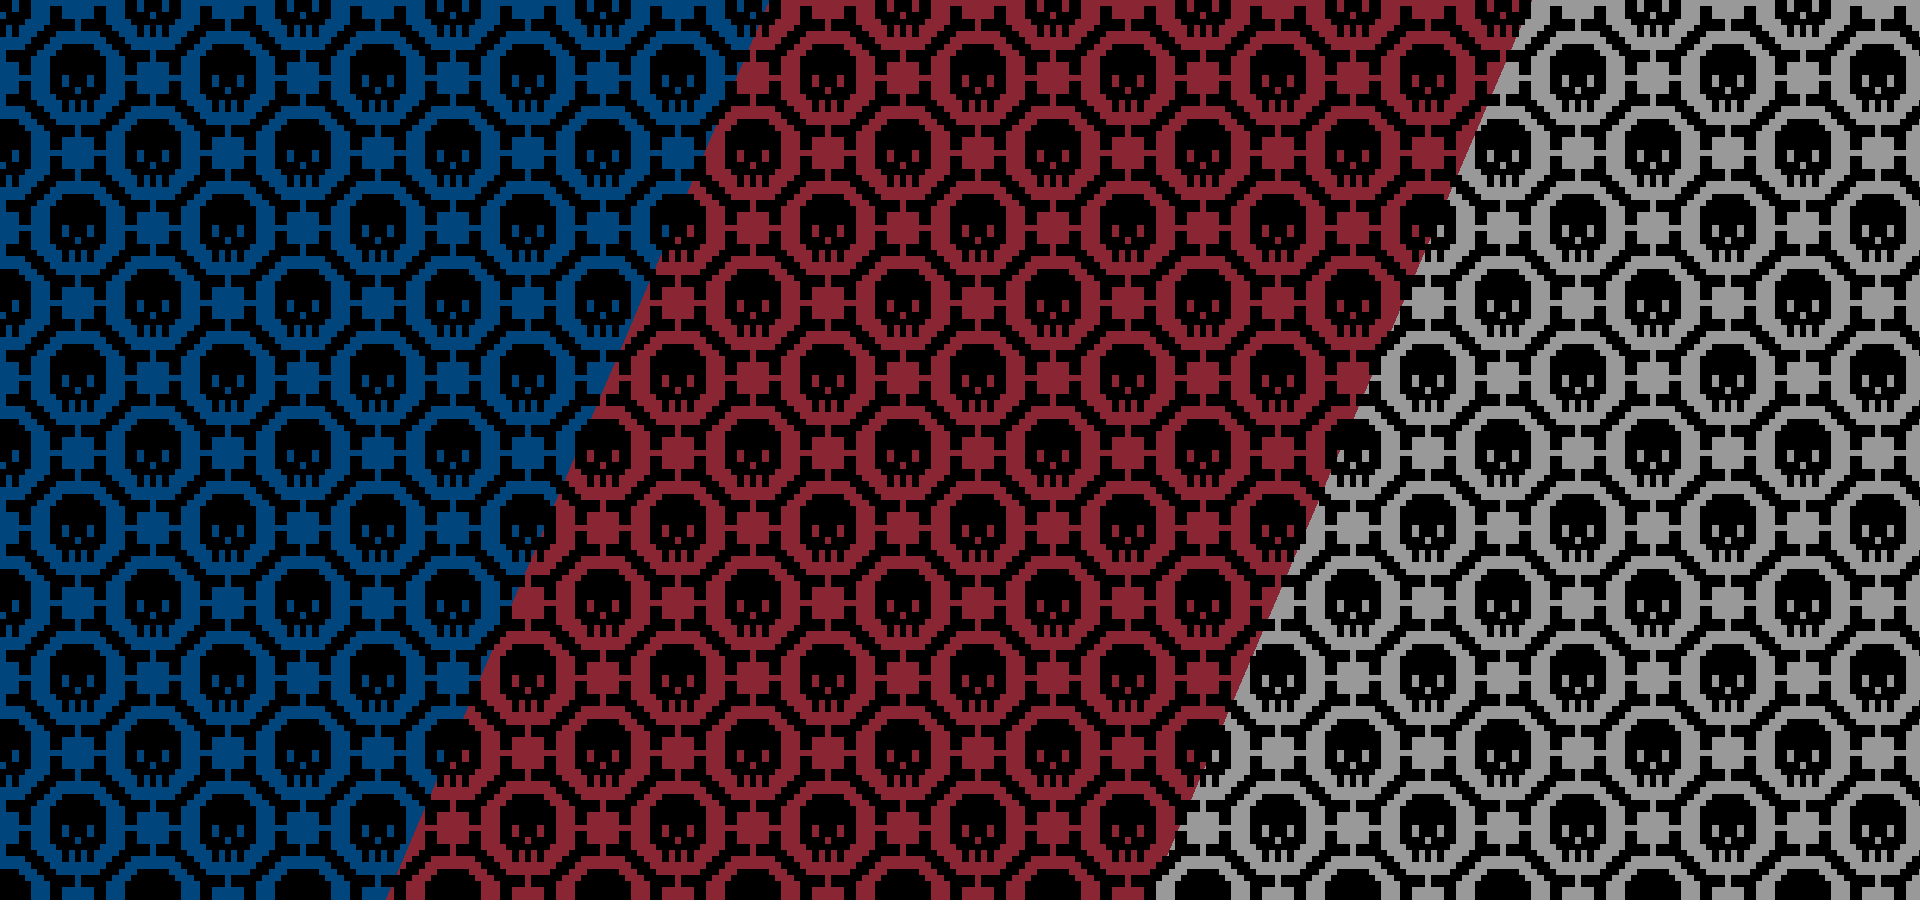 8 bit skulls and bones pattern collection